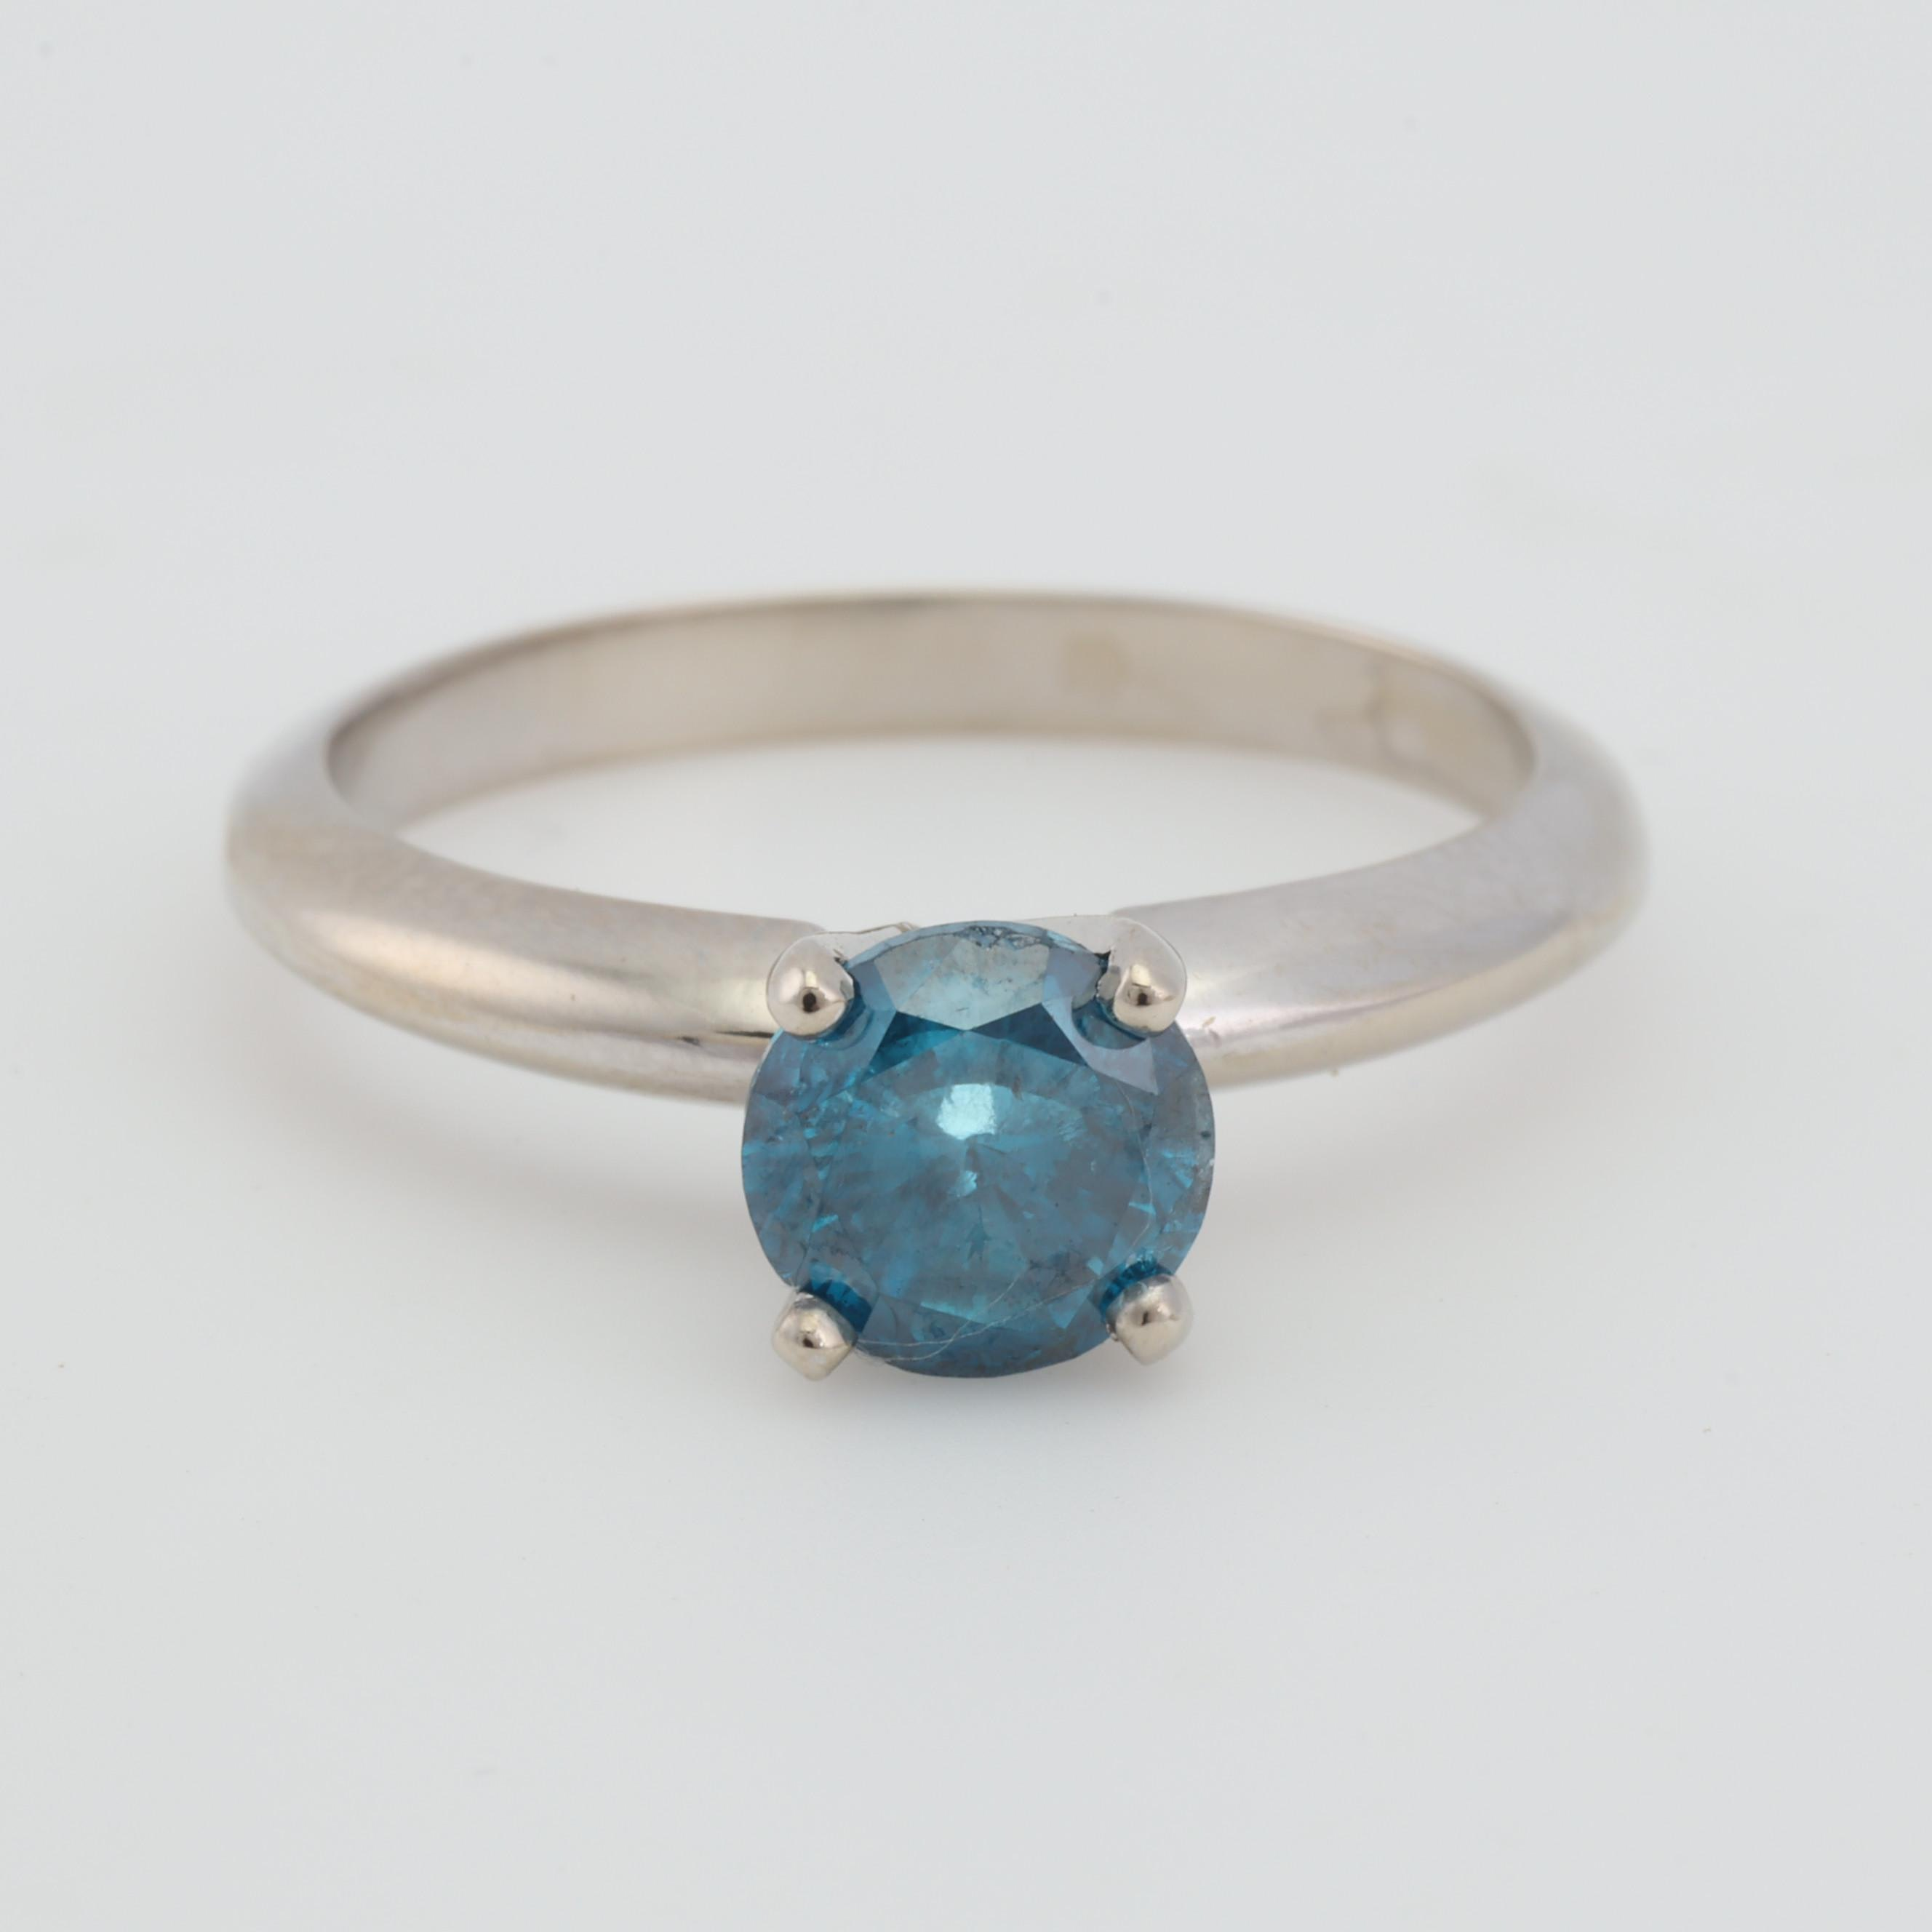 14K White Gold Irradiated Blue Diamond Solitaire Ring